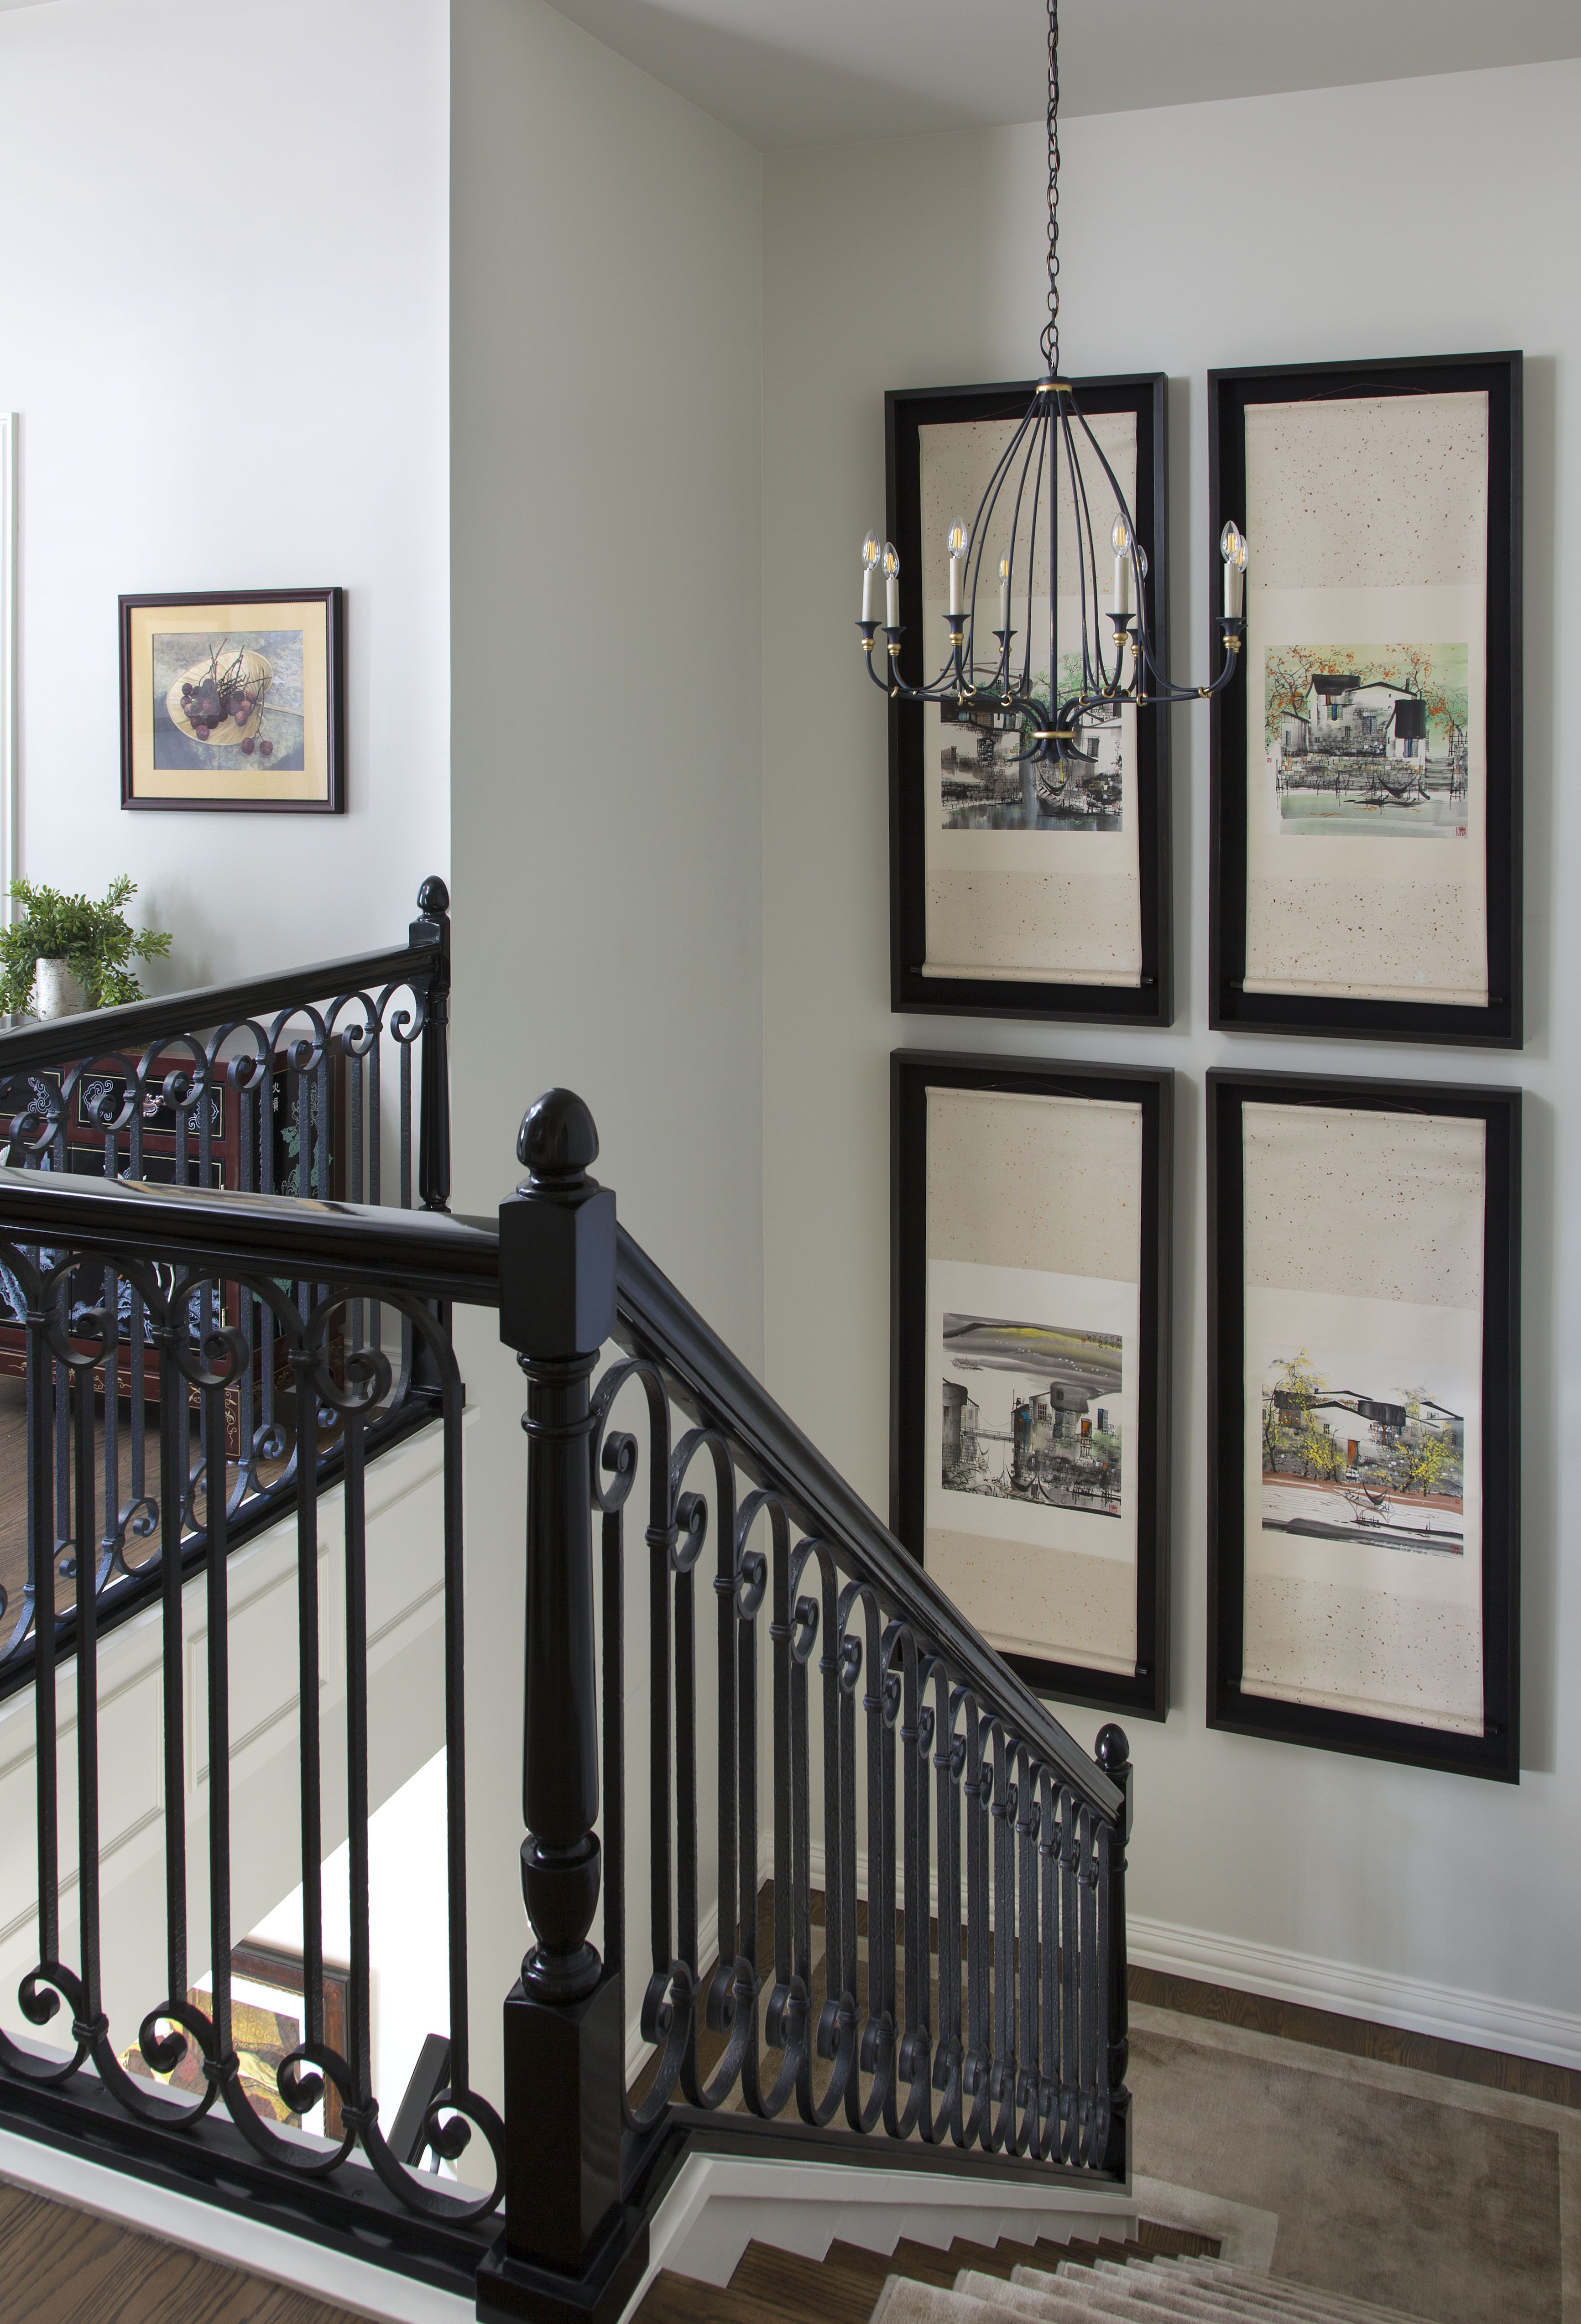 Staircases In Homes 27 Stylish Staircase Decorating Ideas How To Decorate Stairways